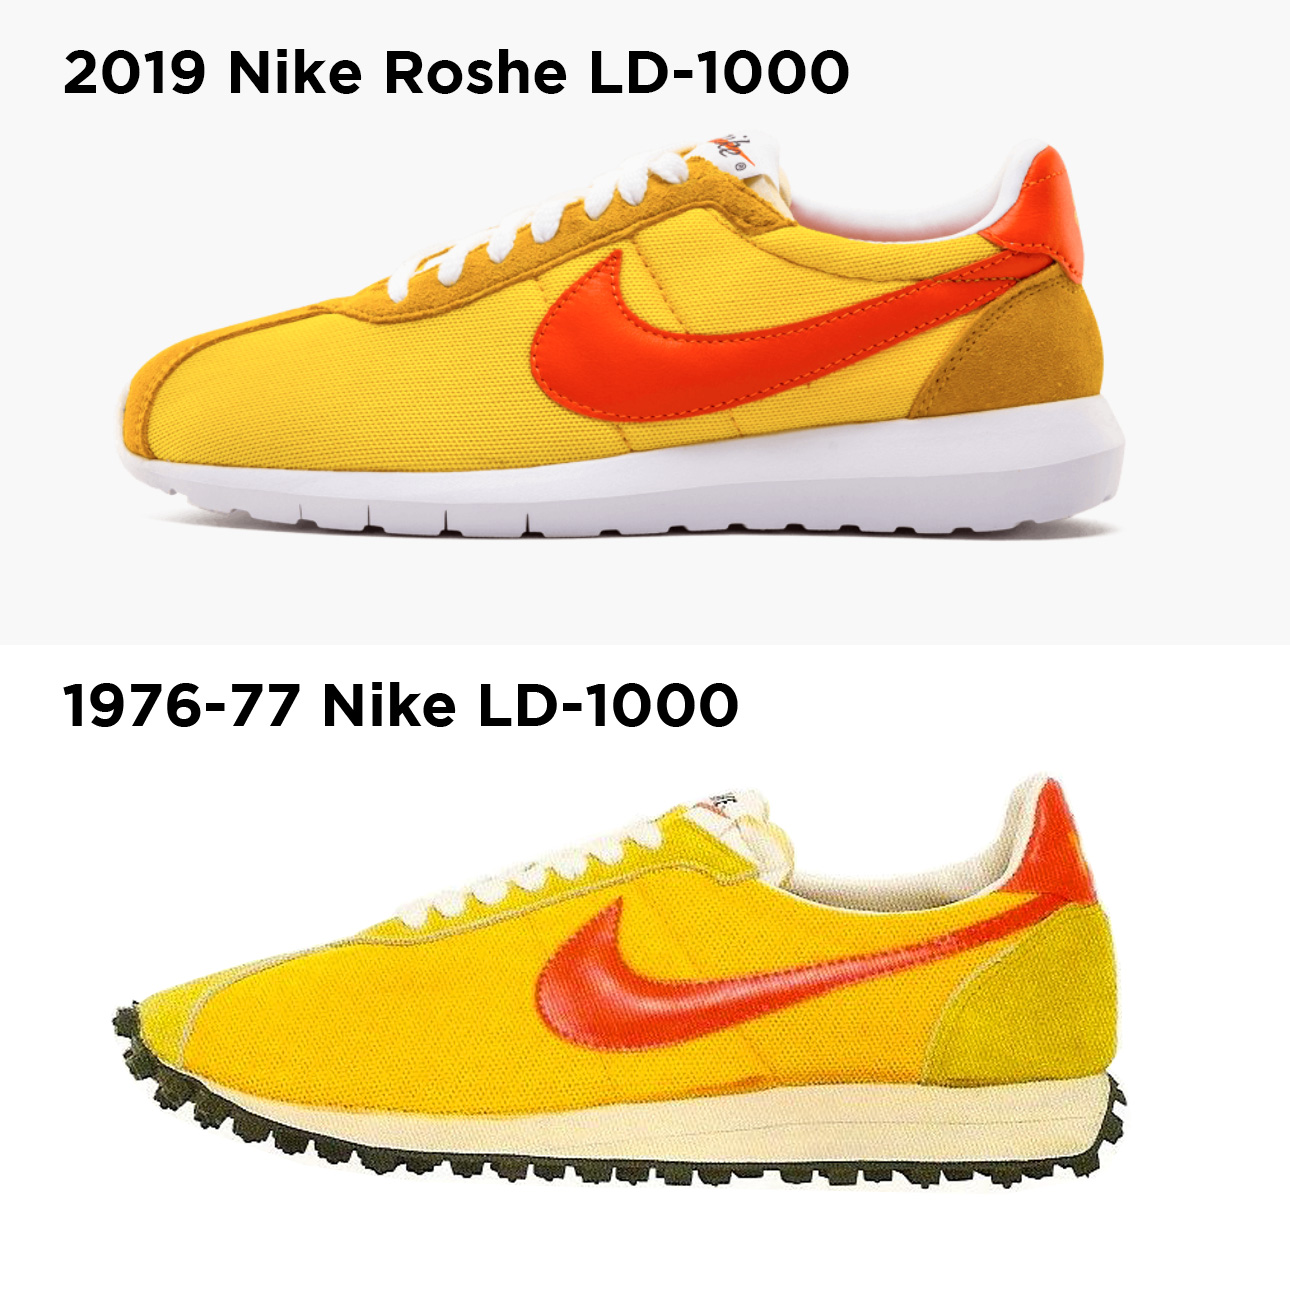 db7f48d795f2 Top image credit to Stadium Goods , bottom image is from the 1976-77 Nike